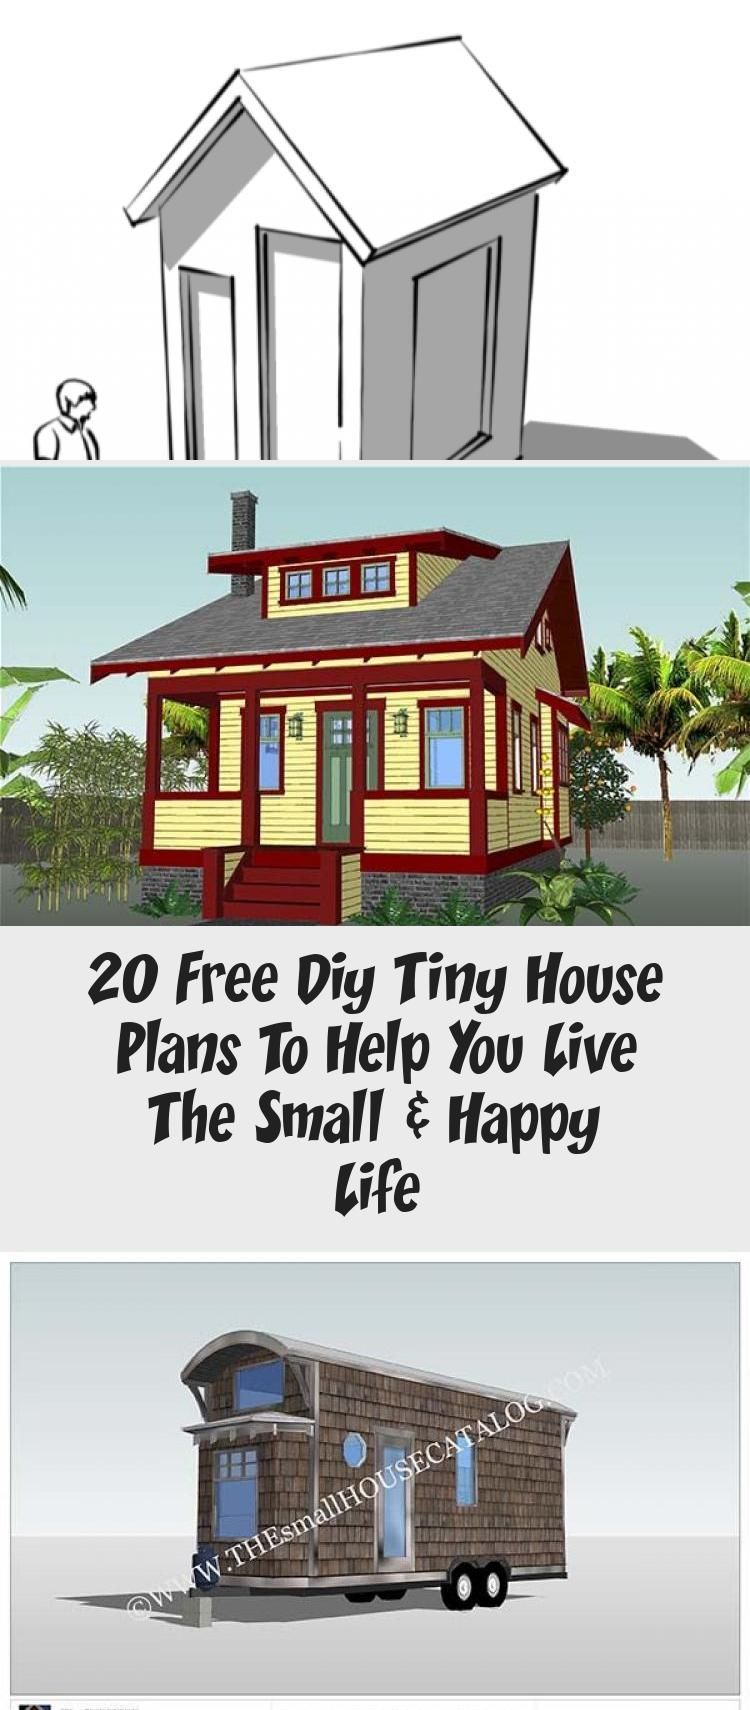 Living In A 100 400 Sqft House Can Be More Meaningful Than In A Big One Here Are 20 Free Diy Tiny Tiny House Plans Diy Tiny House Plans Tiny House Plans Free